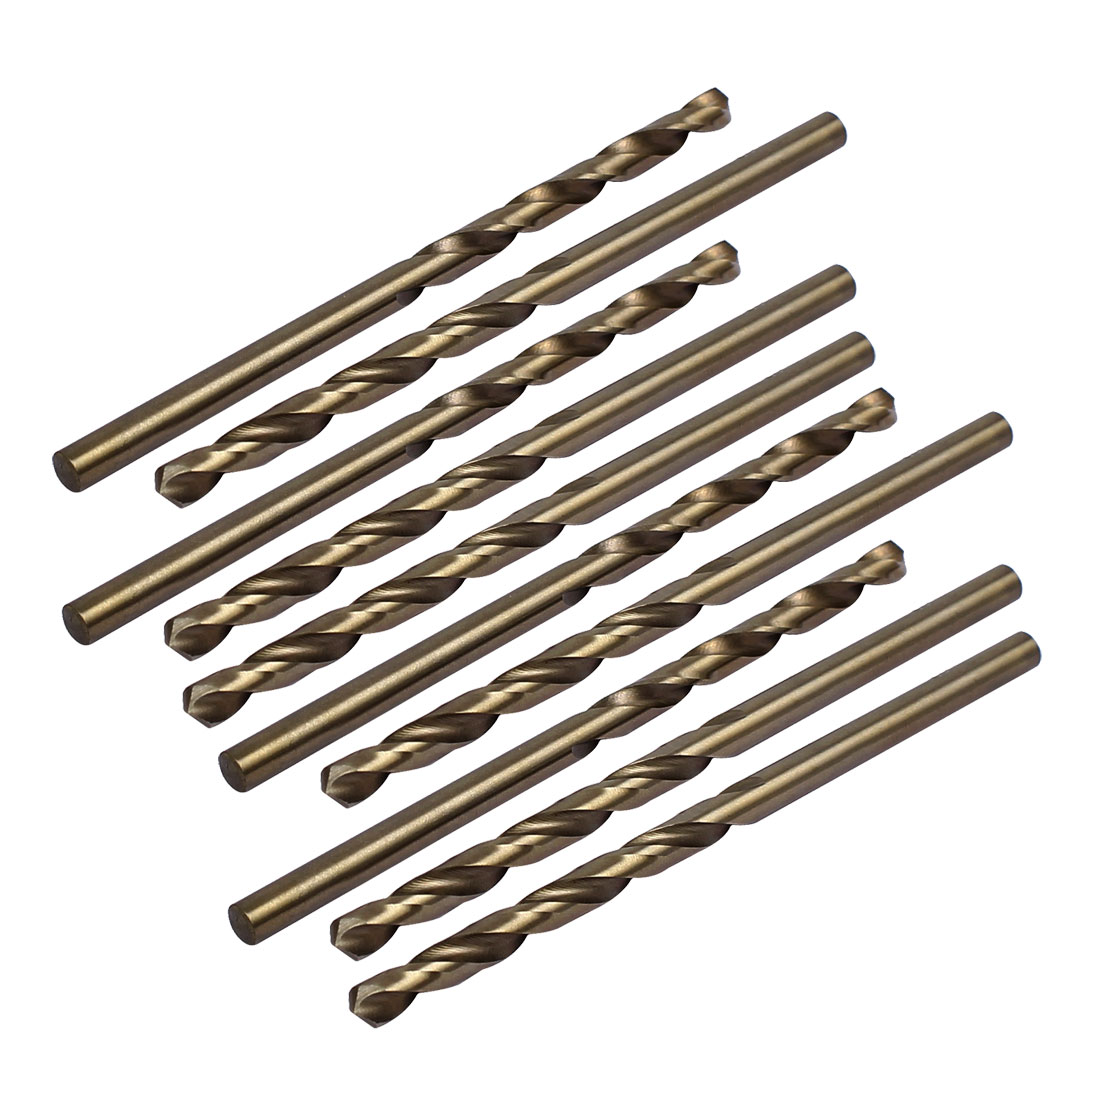 3.6mm Drilling Dia HSS Cobalt Metric Spiral Twist Drill Bit Rotary Tool 10pcs